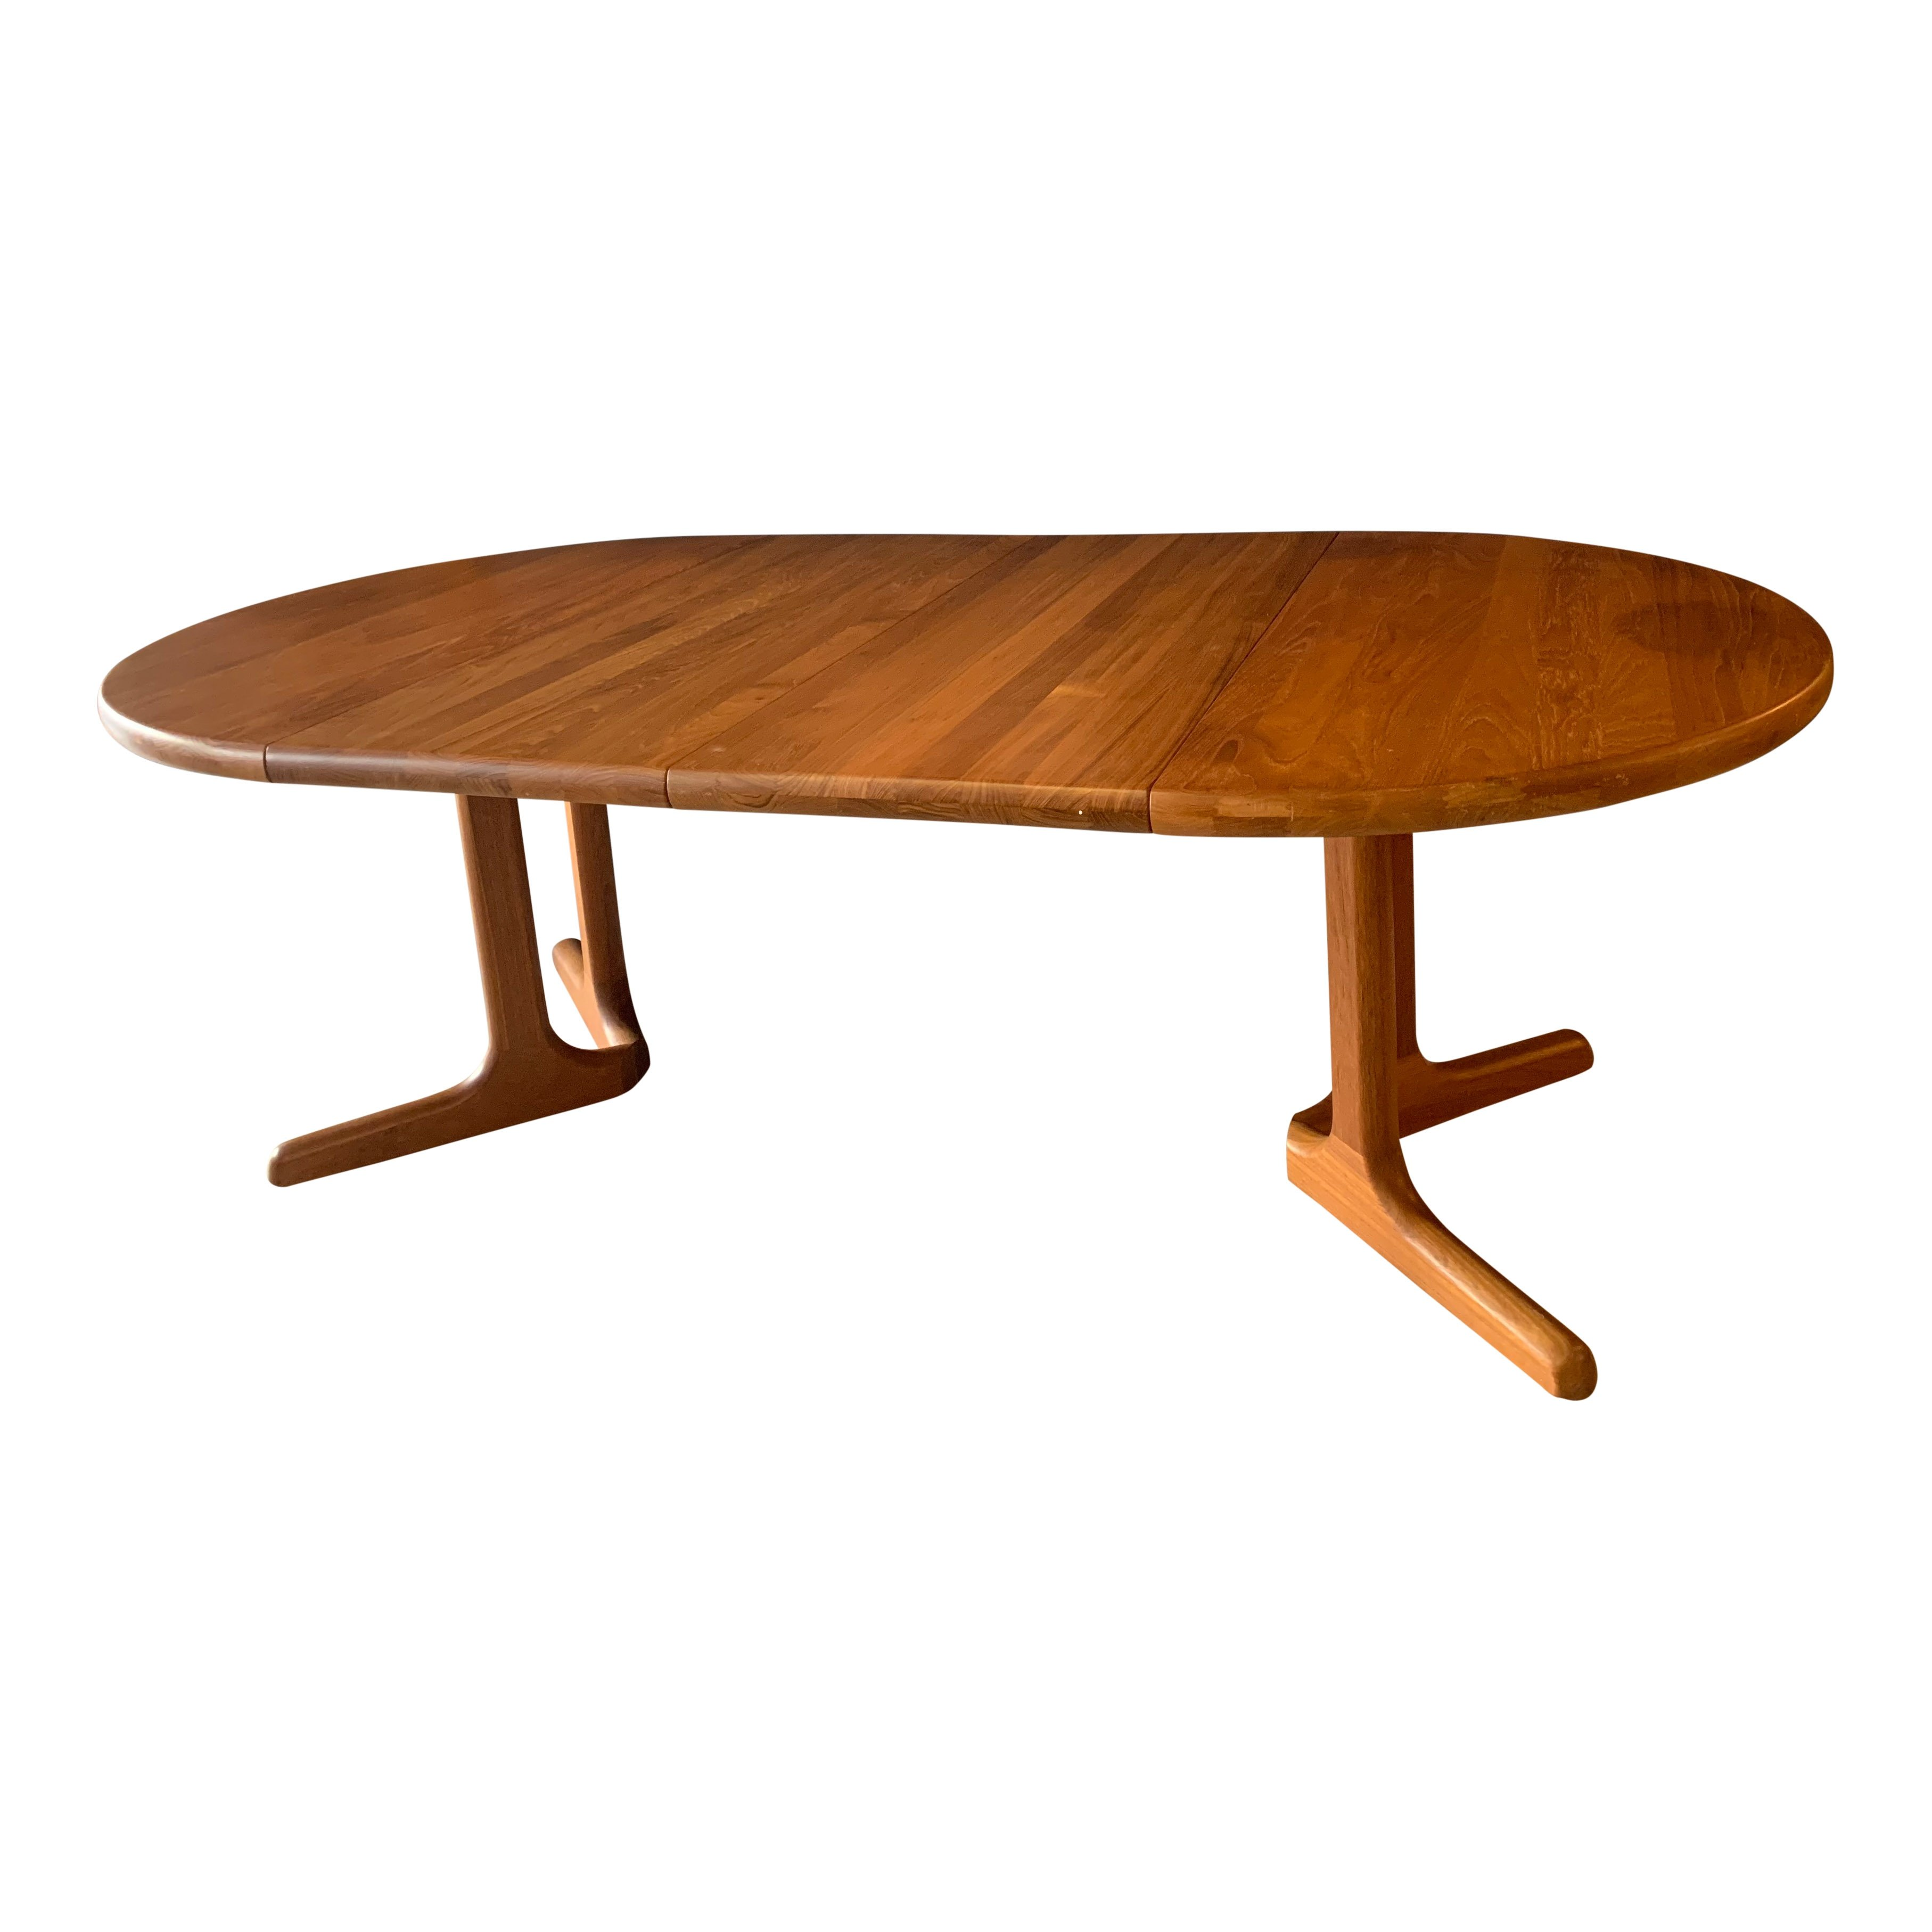 Vintage Teak Round Extendable Dining Table By Am Mobler Denmark 139684